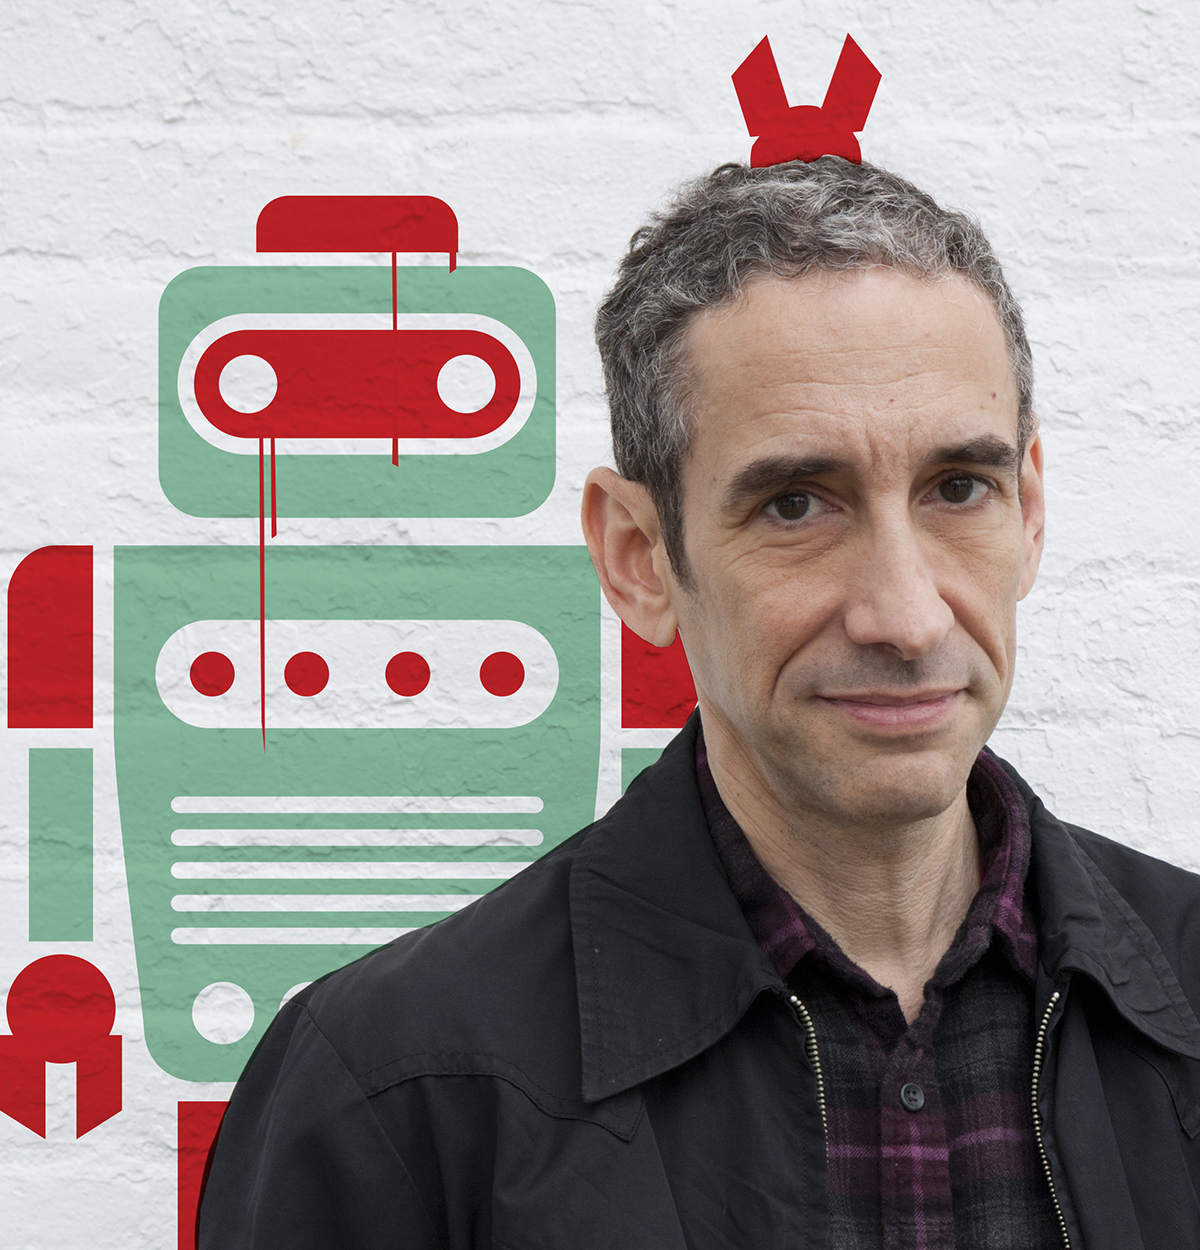 """Douglas Rushkoff on """"Team Human"""" and fighting for our place in the future"""